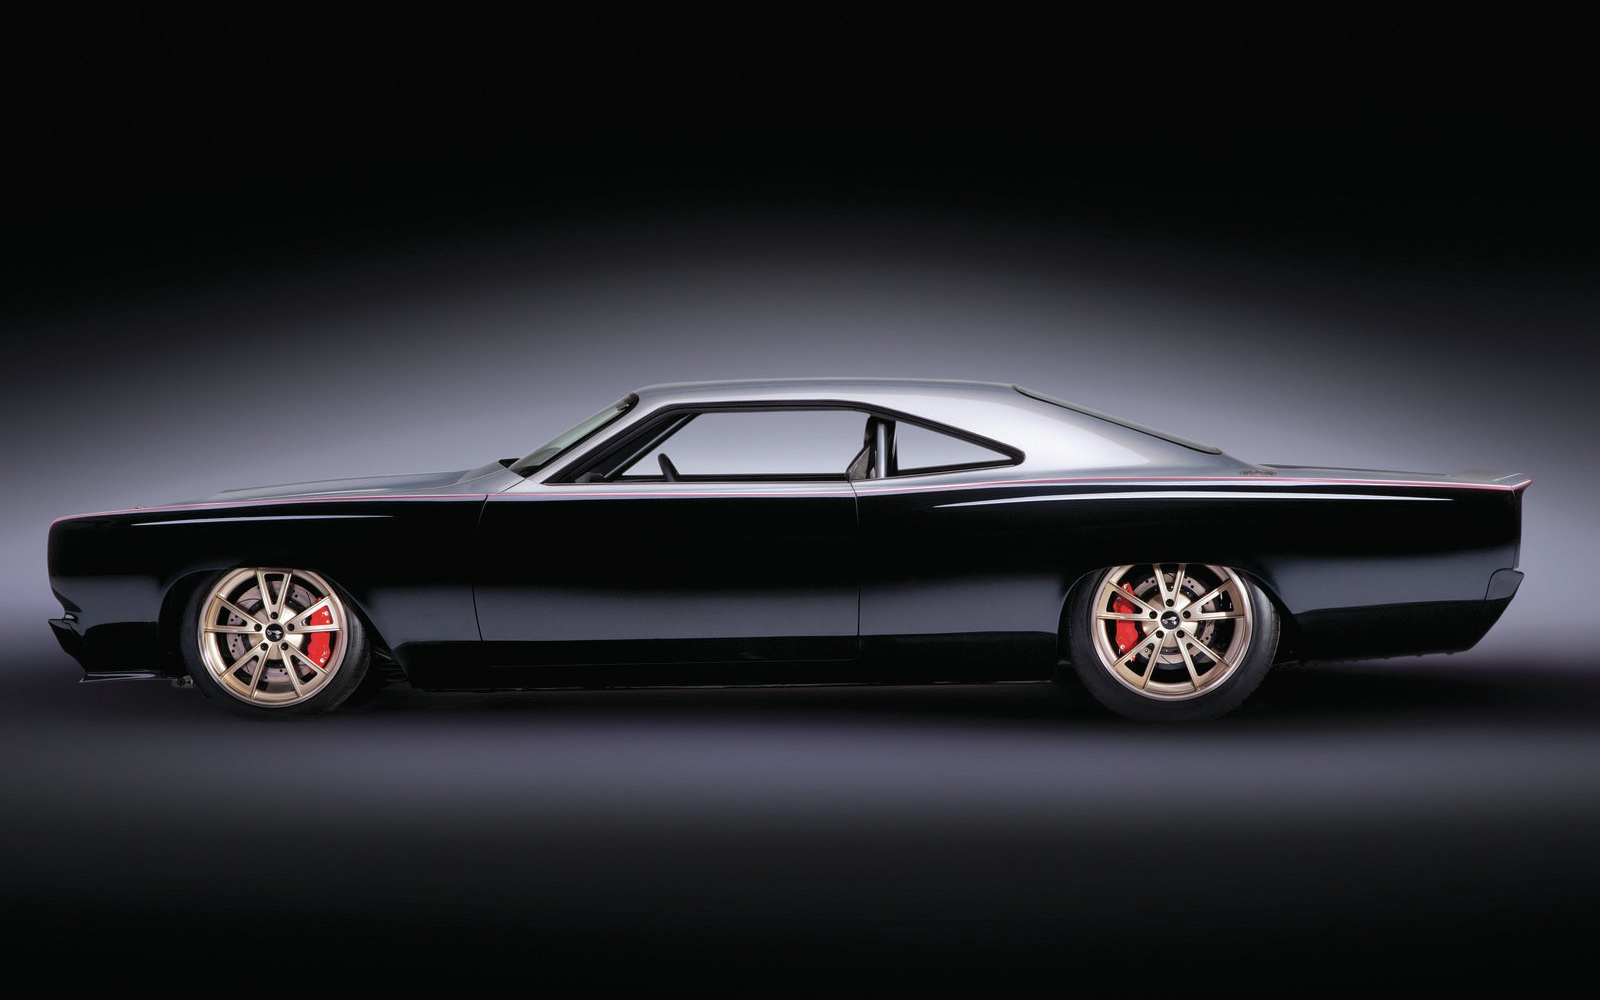 Classic Muscle Car Wallpapers Hd 1680x1050 170 Plymouth Hd Wallpapers Background Images Wallpaper